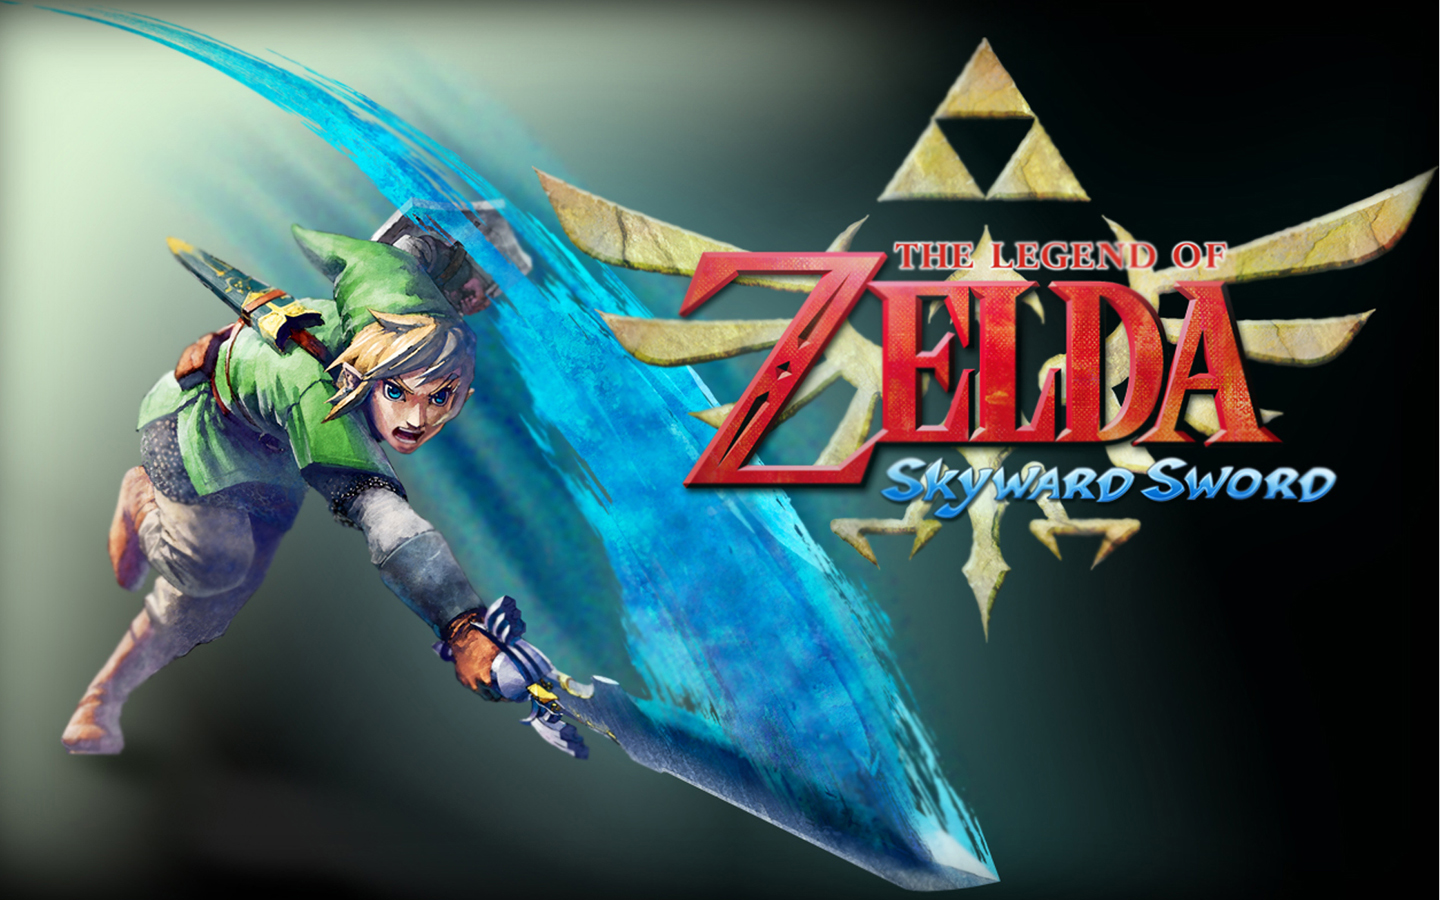 a review of the legend of zelda 2 The legend of zelda: breath of the wild is an action-adventure game developed and published by nintendoa part of the legend of zelda series, it was released for the nintendo switch and wii.